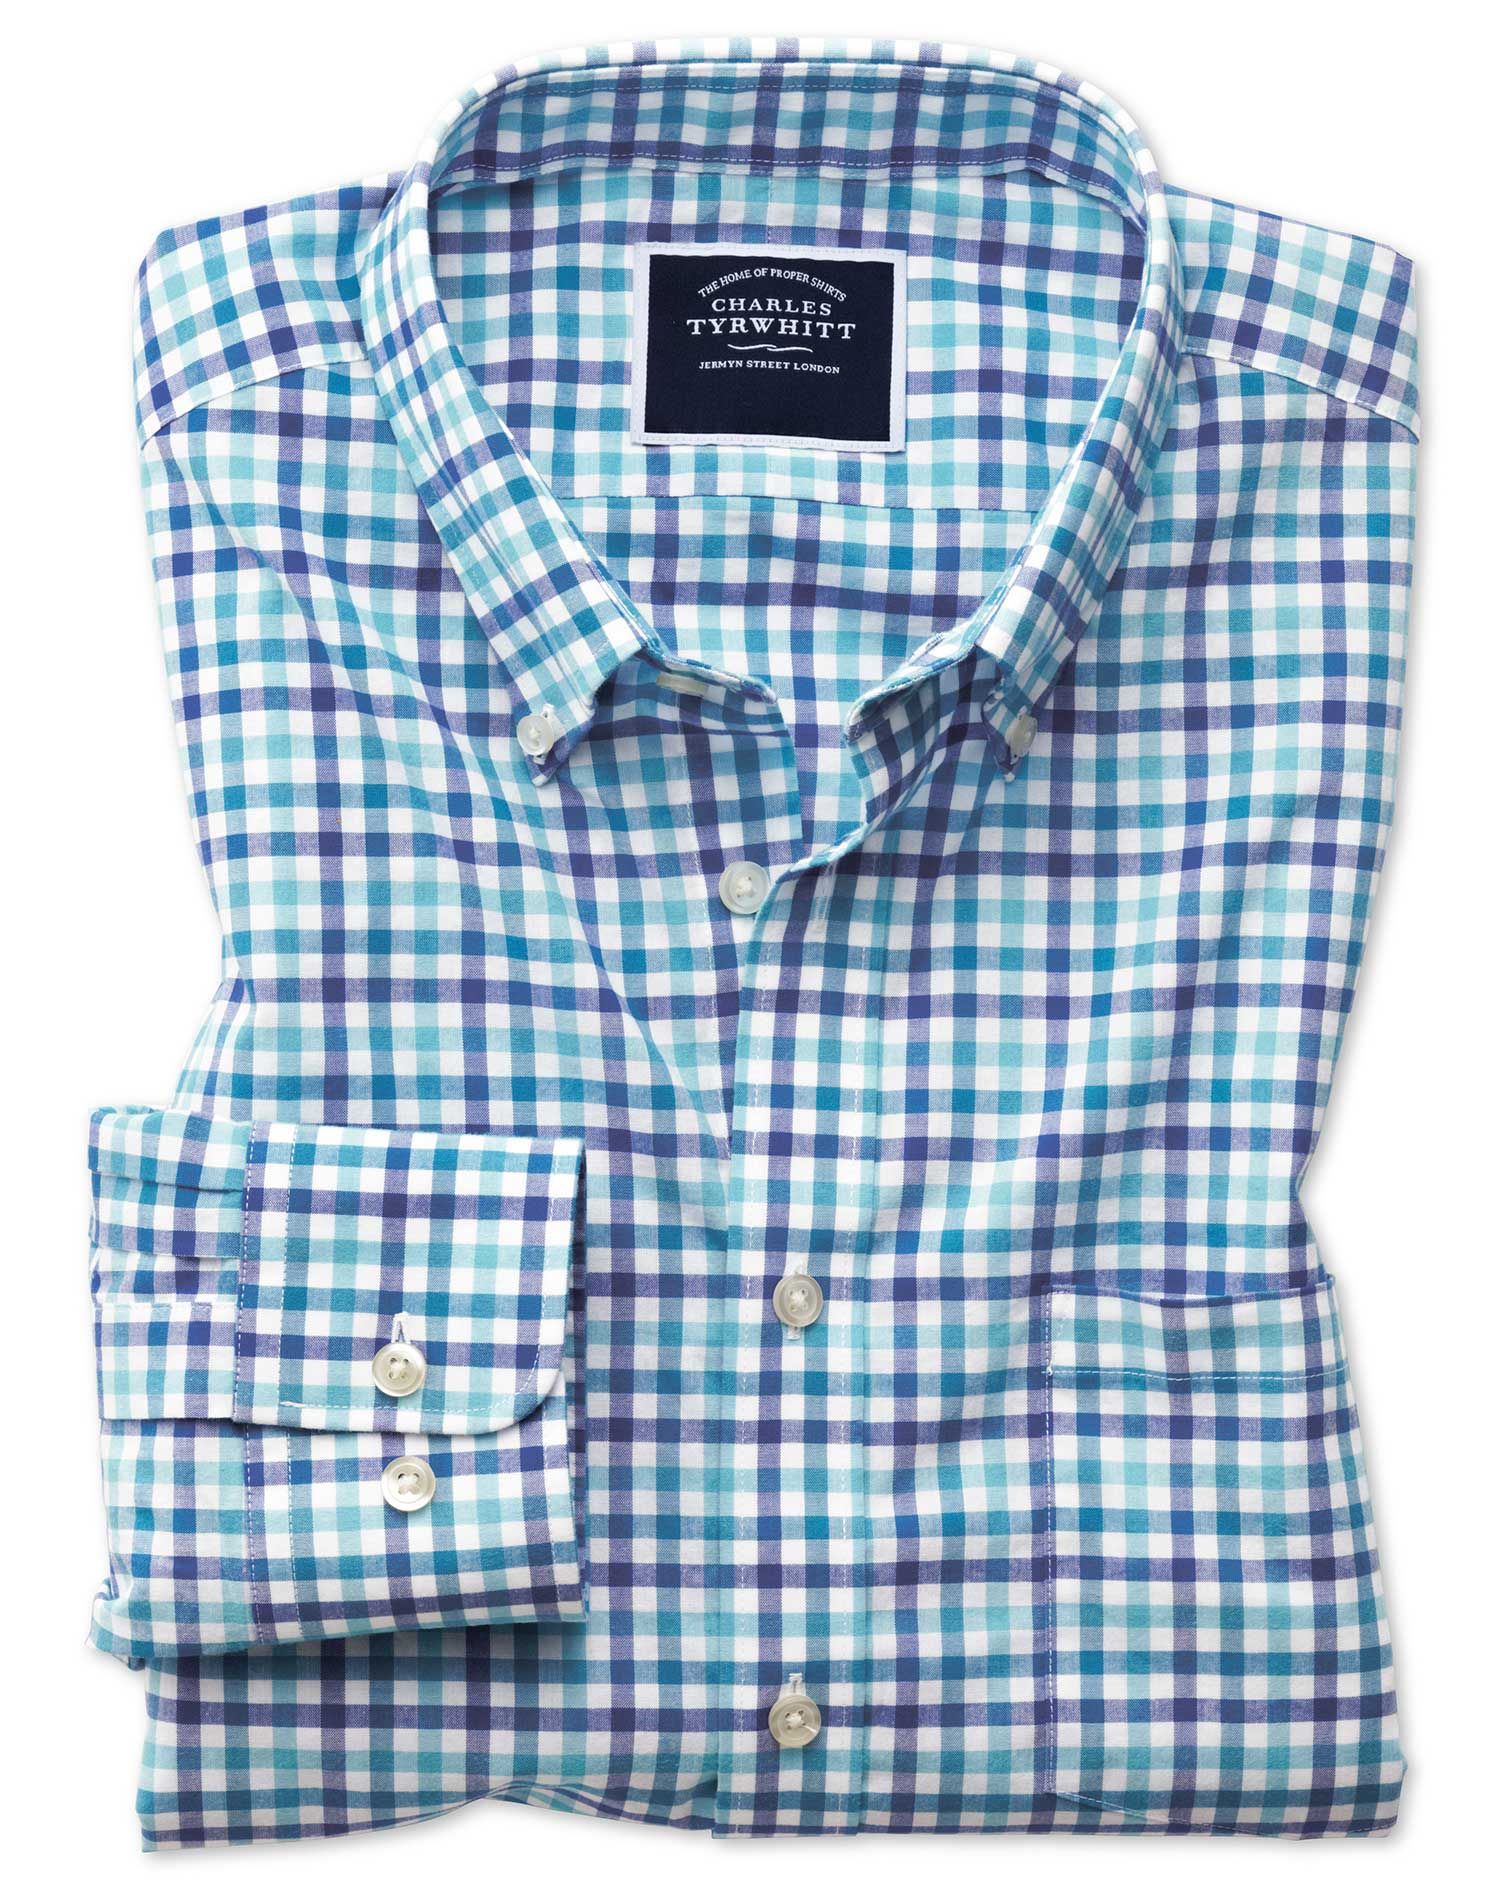 Slim Fit Poplin Blue Multi Gingham Cotton Shirt Single Cuff Size Large by Charles Tyrwhitt